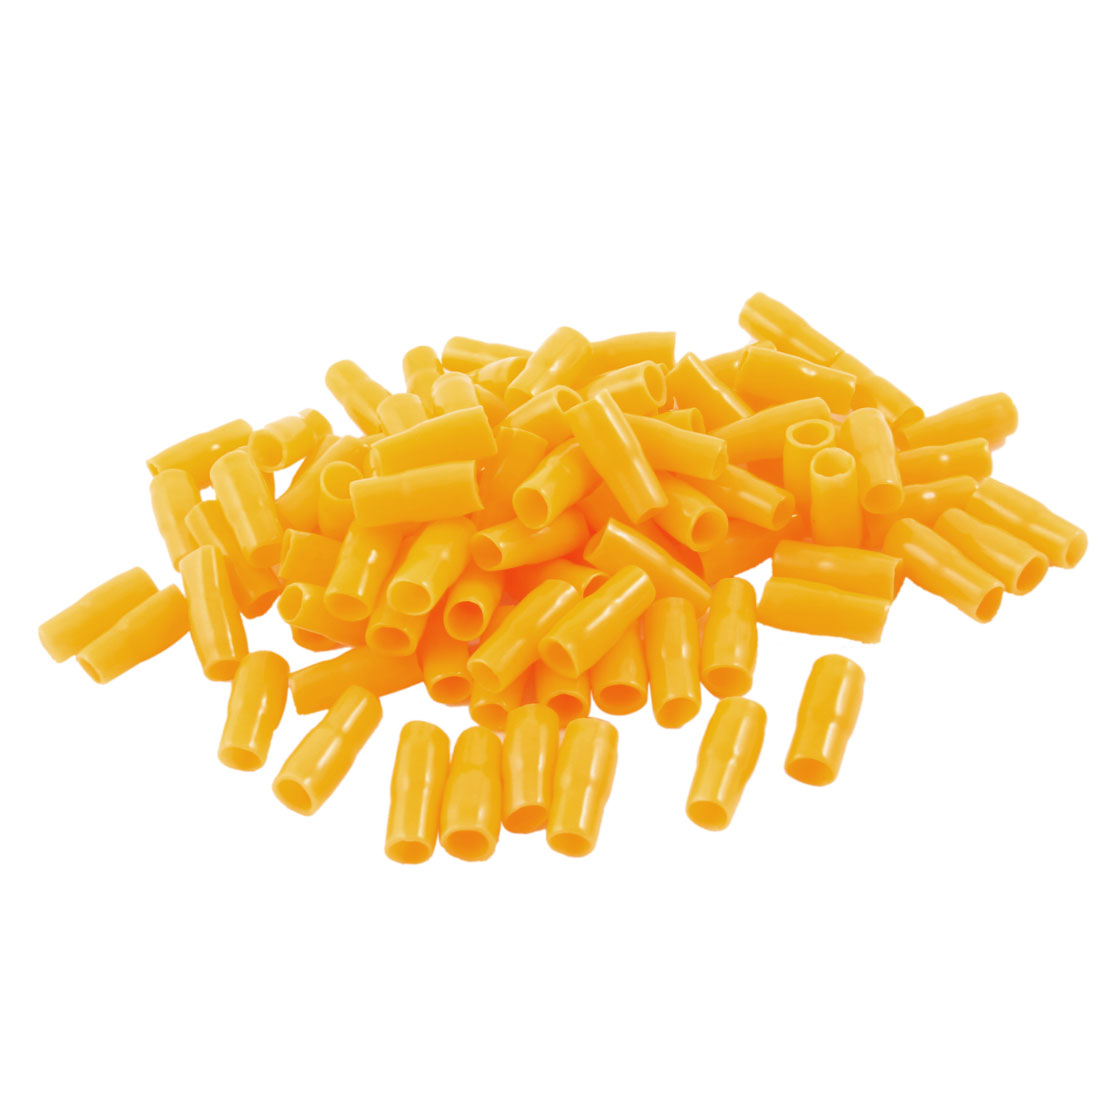 100-Pcs-Yellow-Plastic-Battery-Terminal-Boots-Insulating-Covers